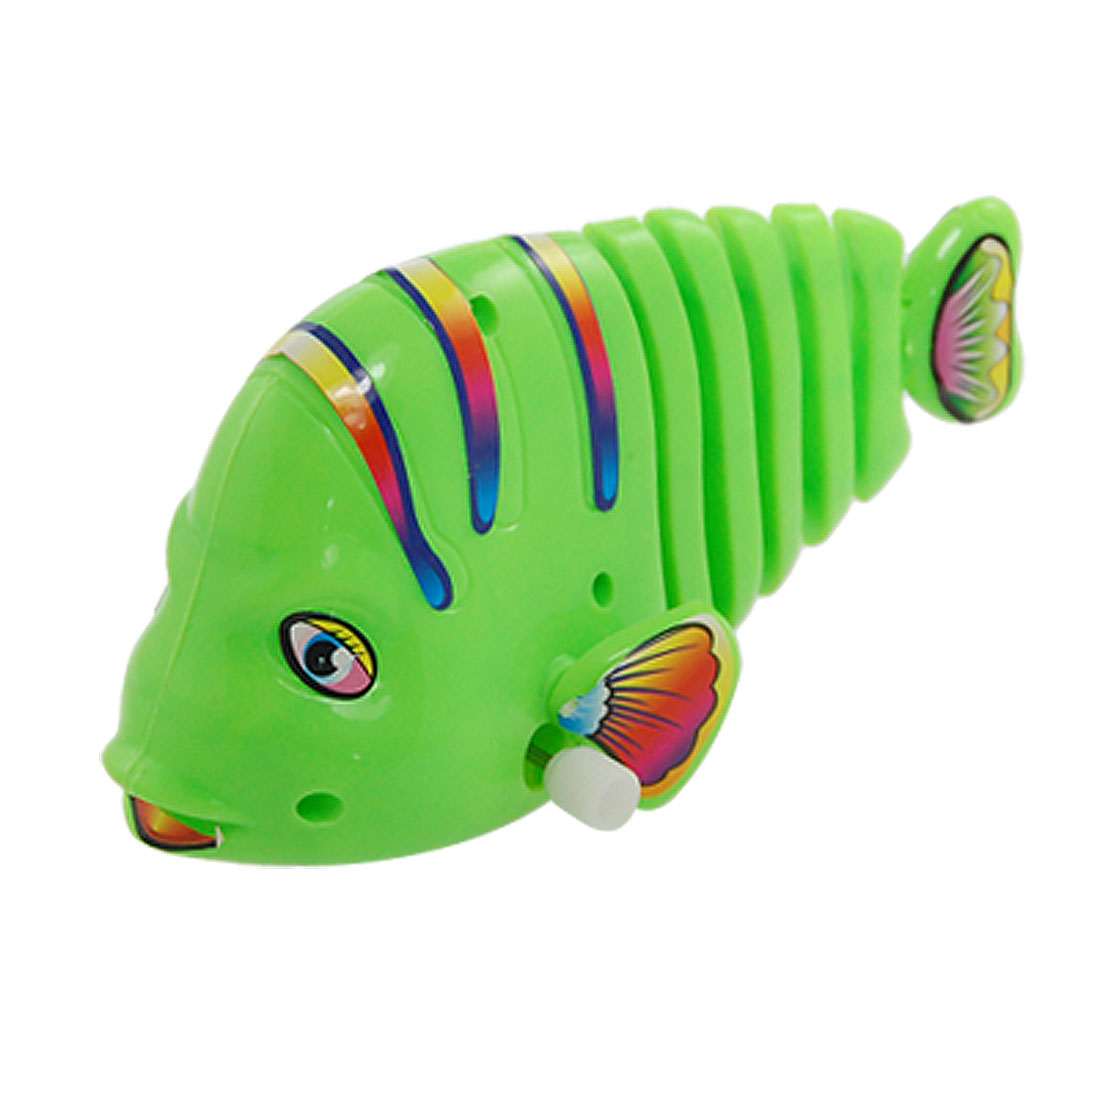 Green Plastic Wind-up Swimming Spring Fish Toy for Children